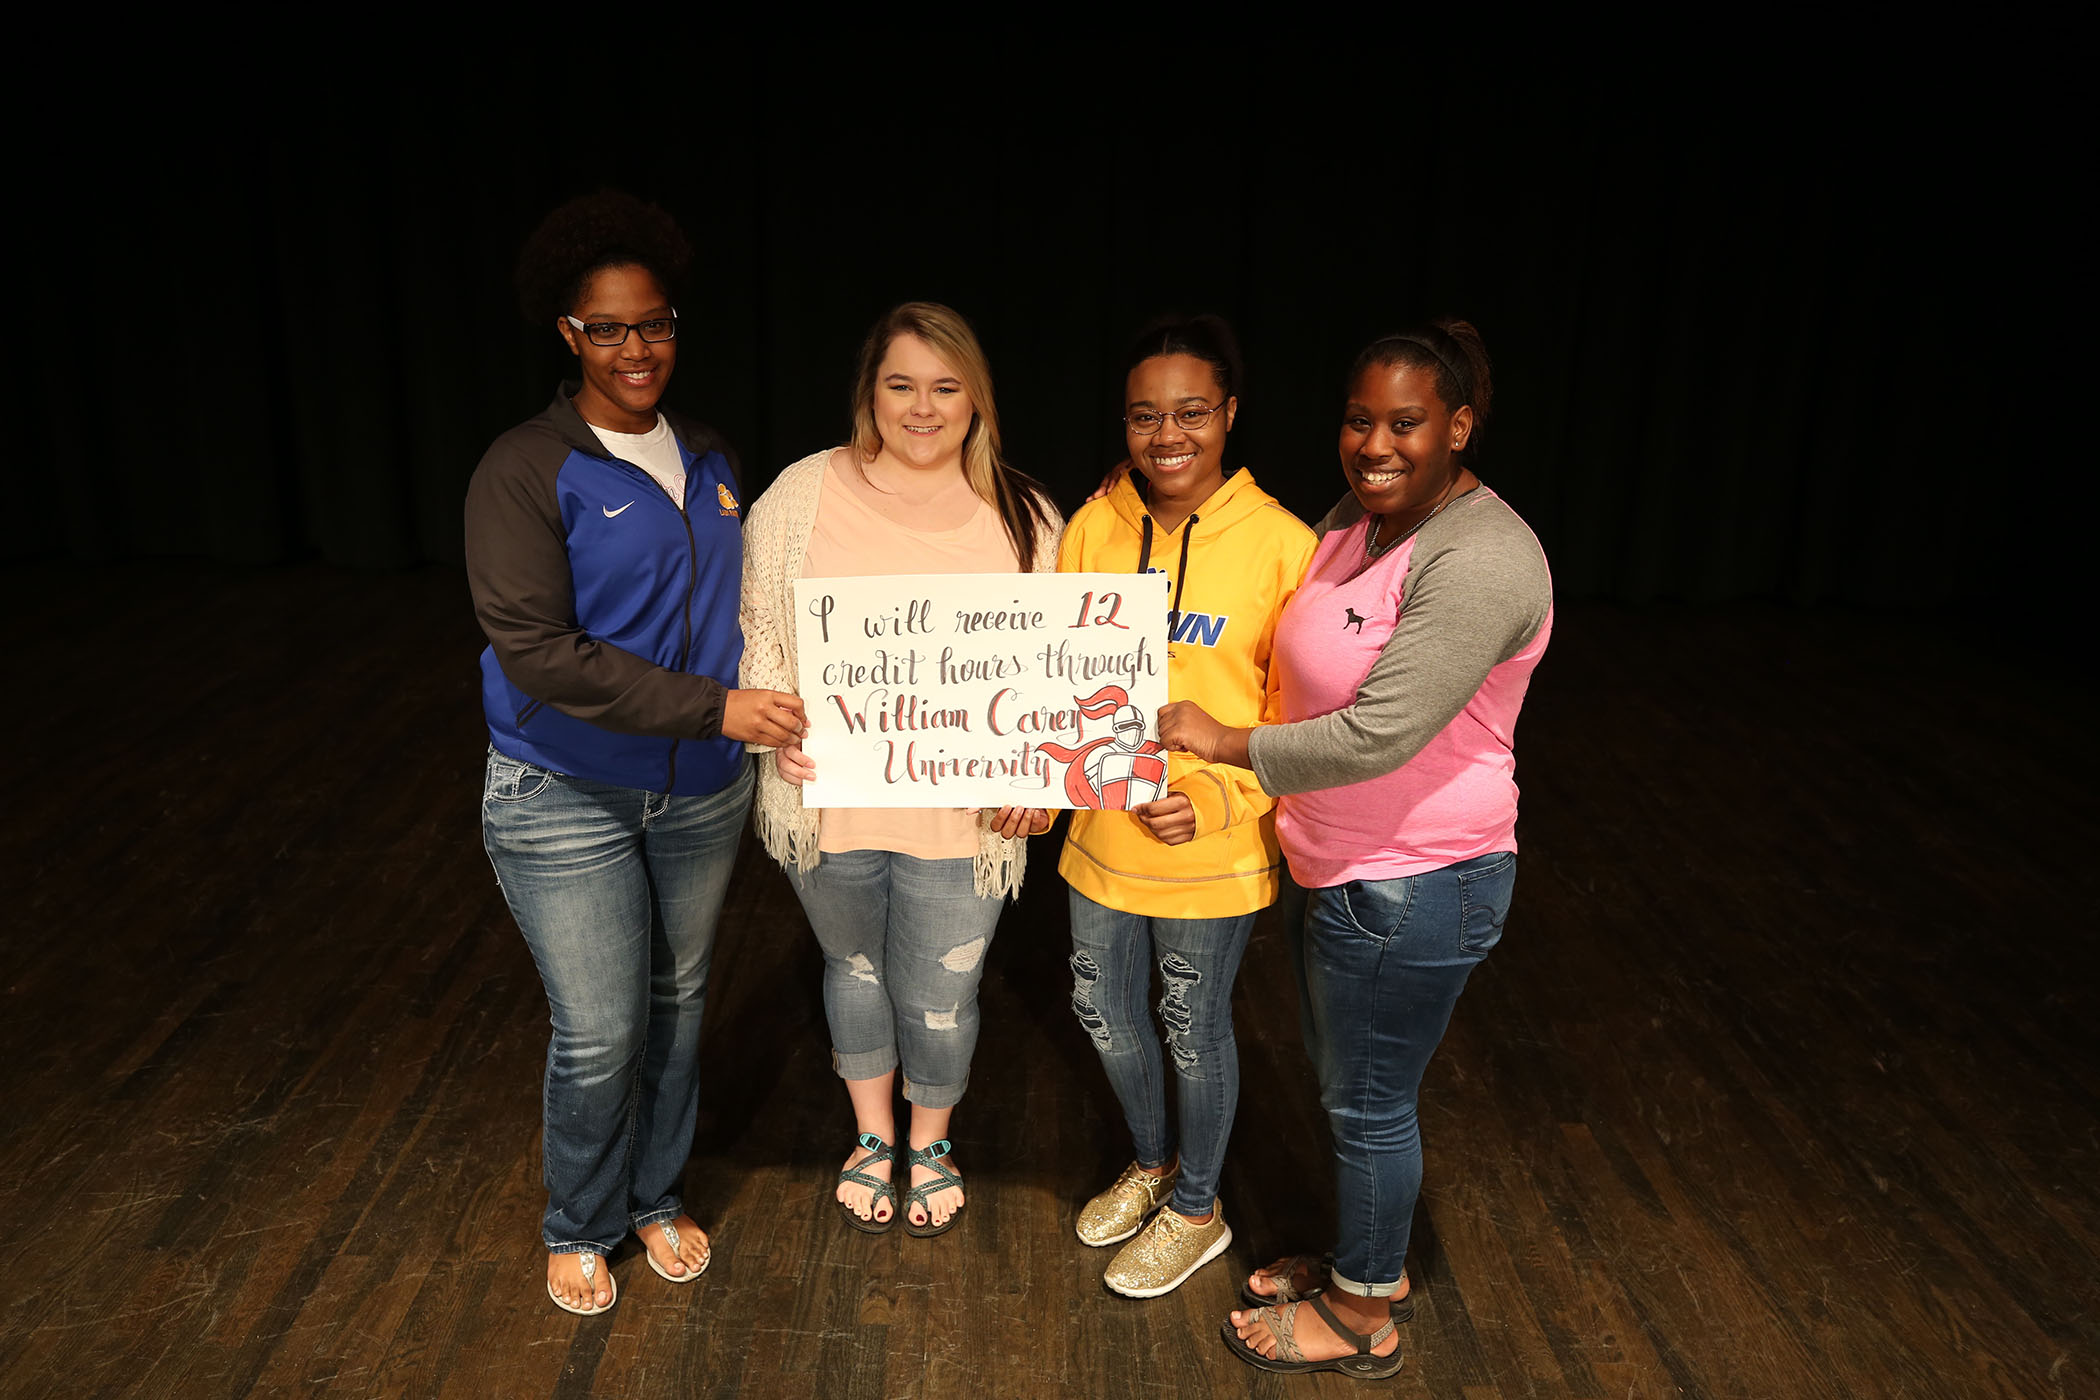 Amiya stands with her classmates who will graduate high school with twelve college credit hours.